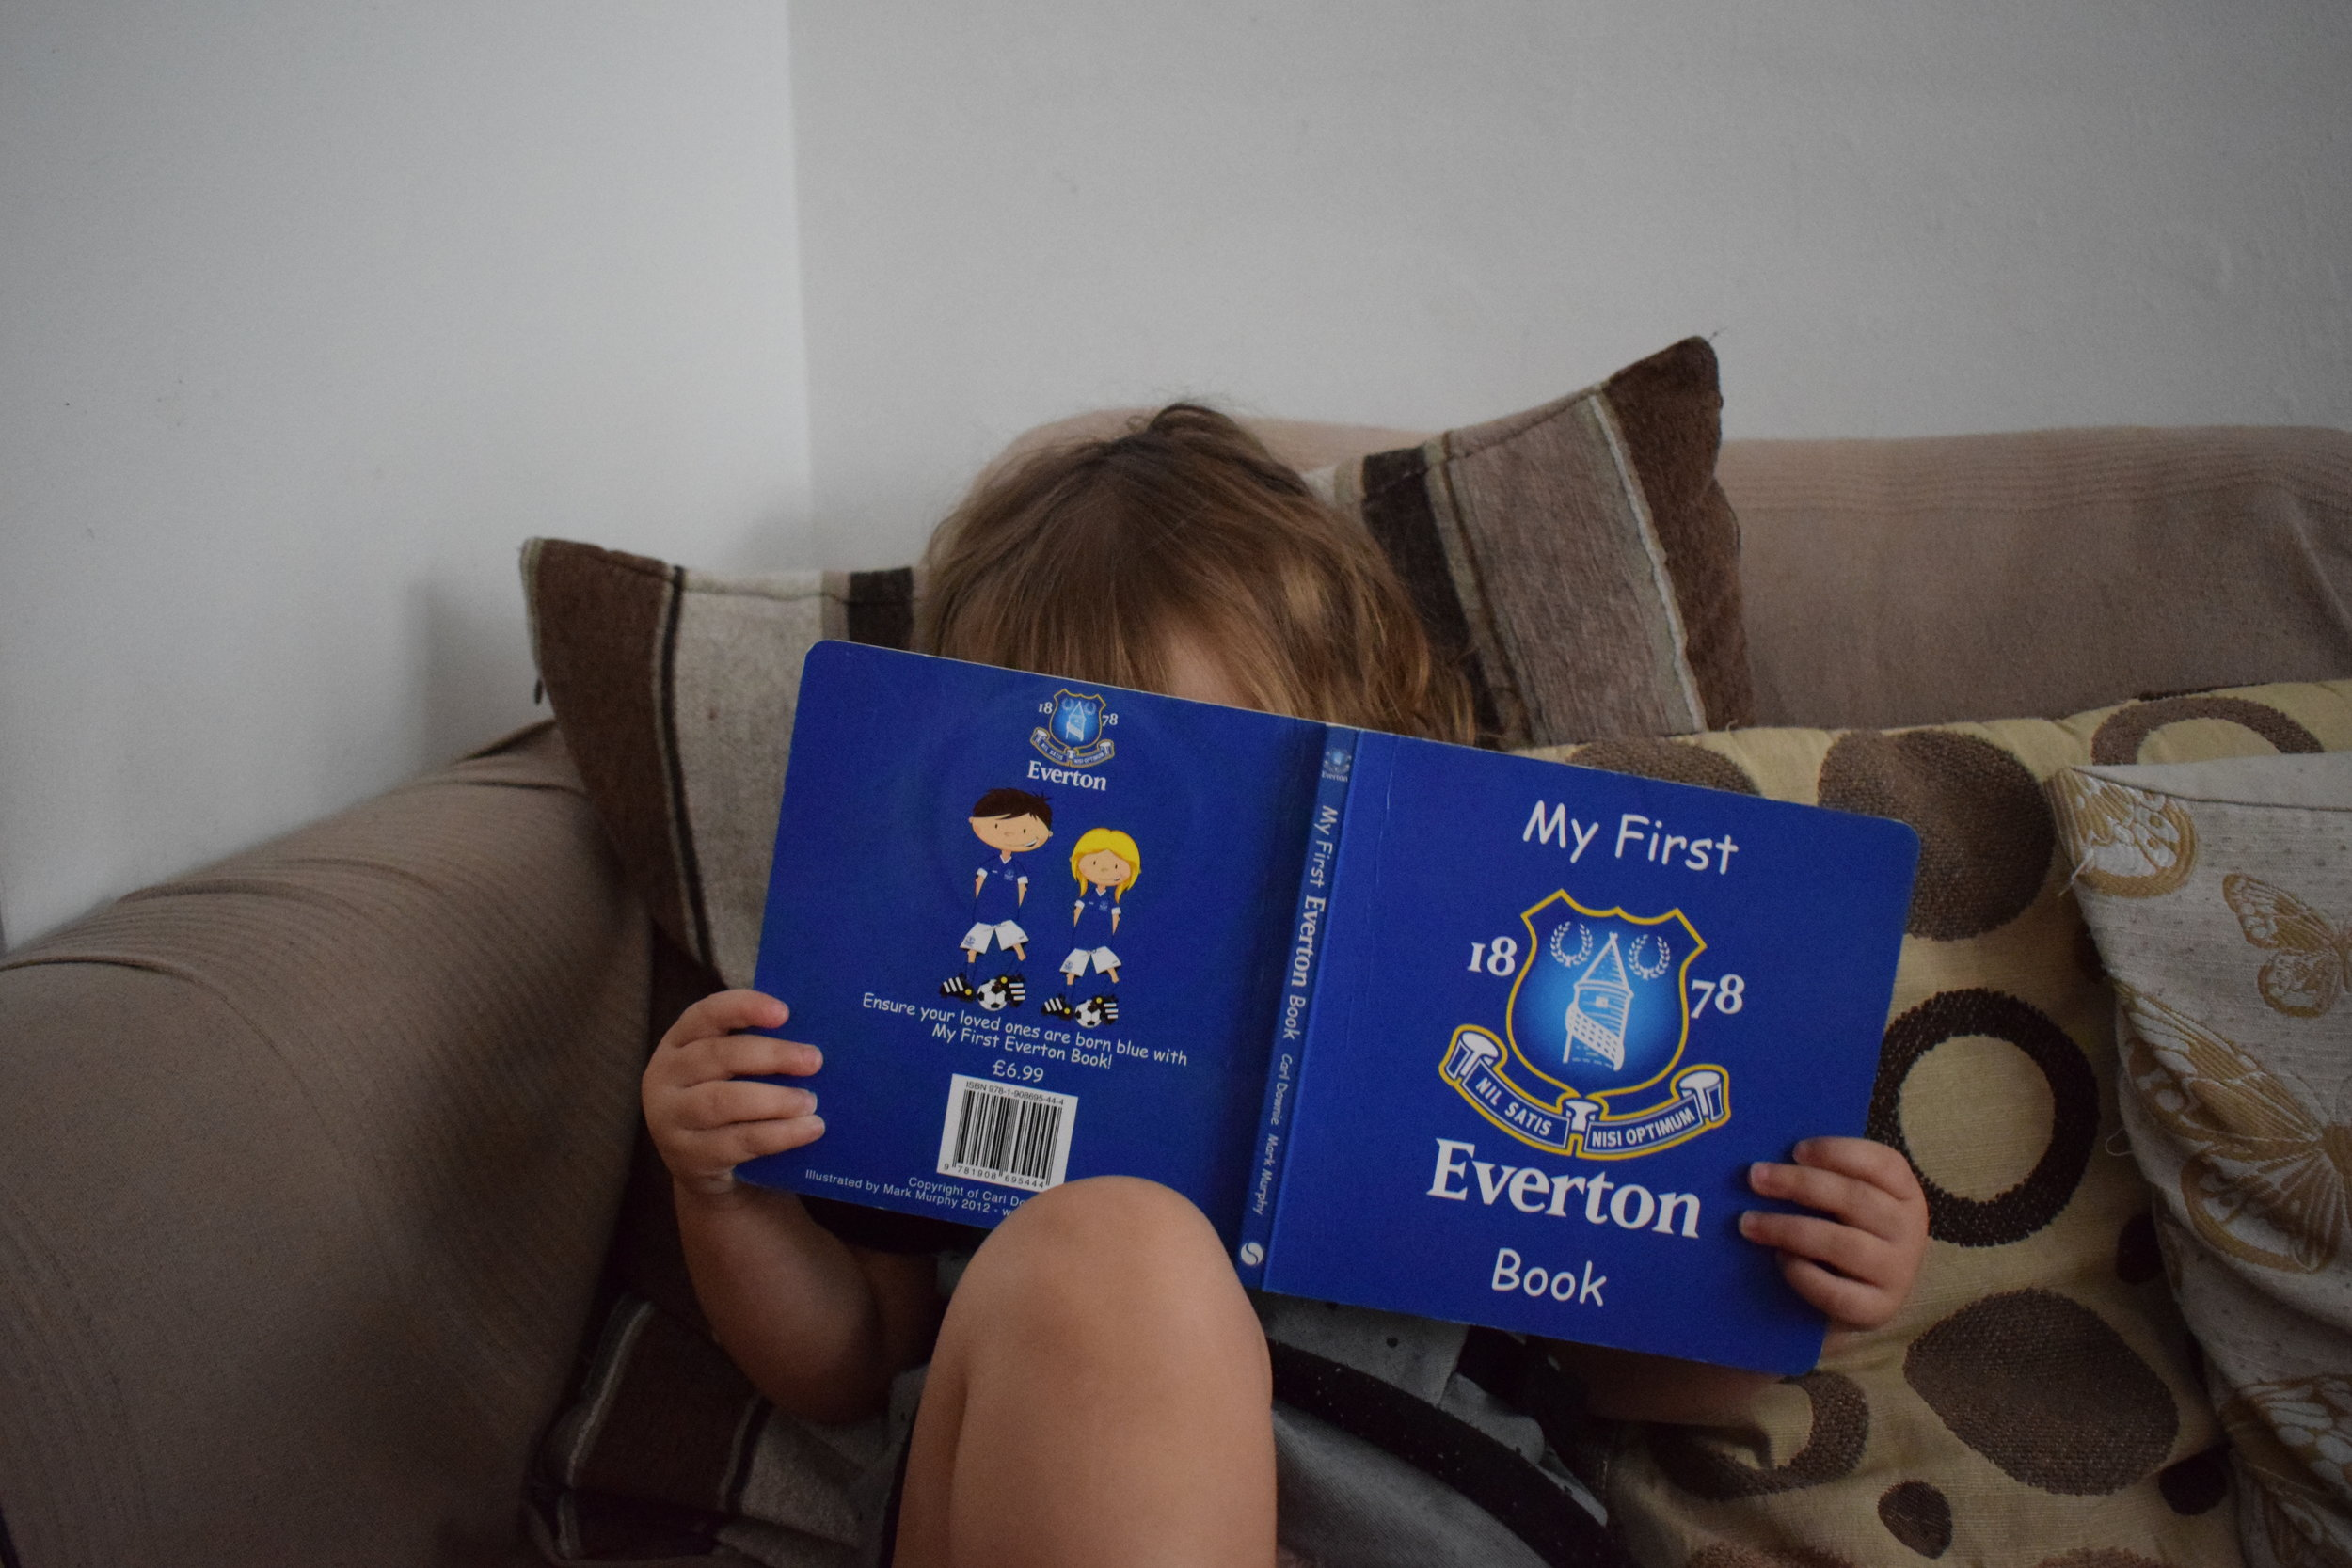 My First Everton Book